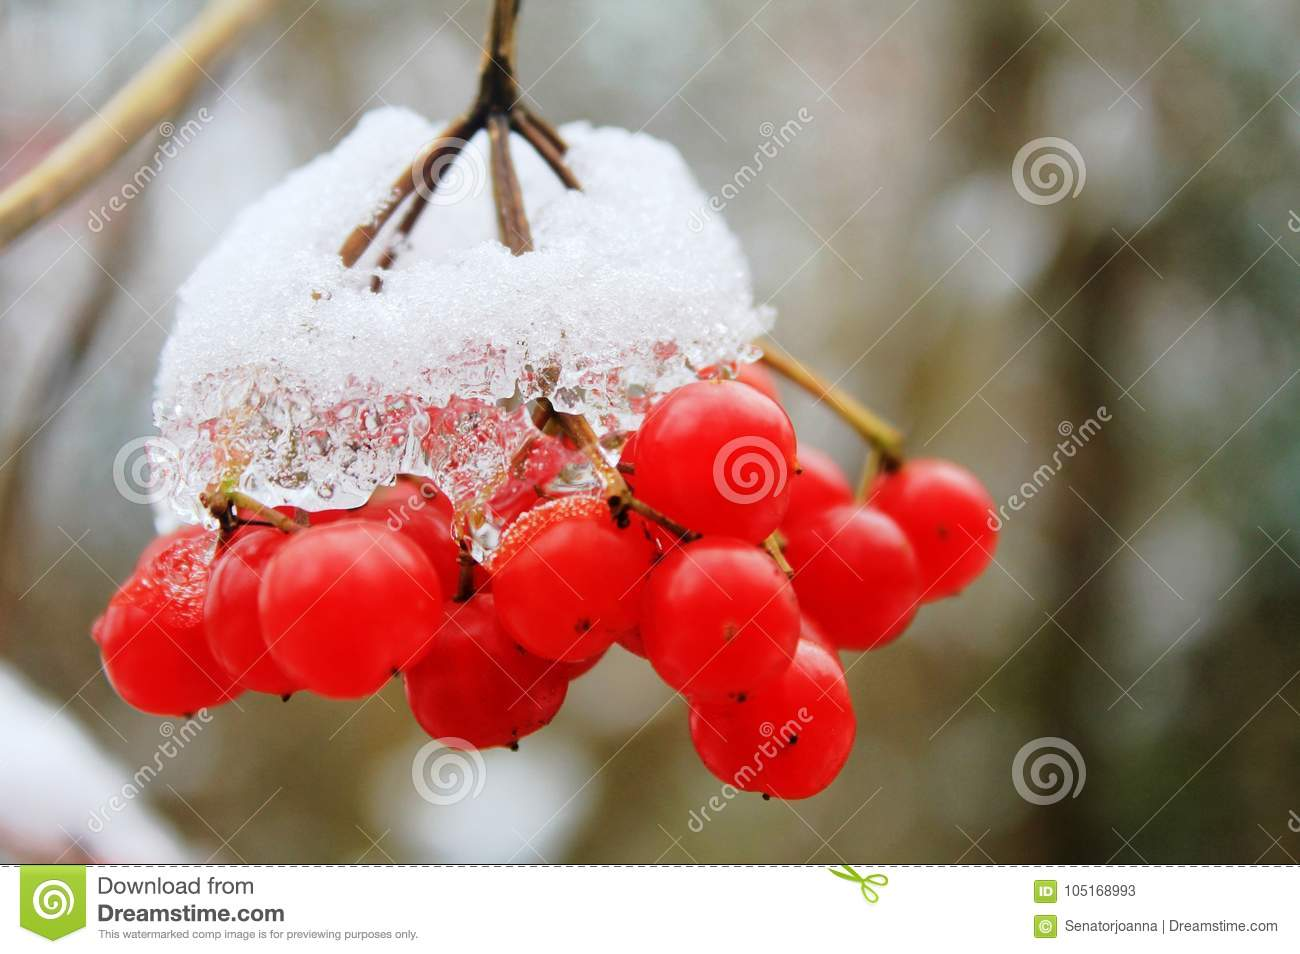 Fruits of mountain - ash under snow